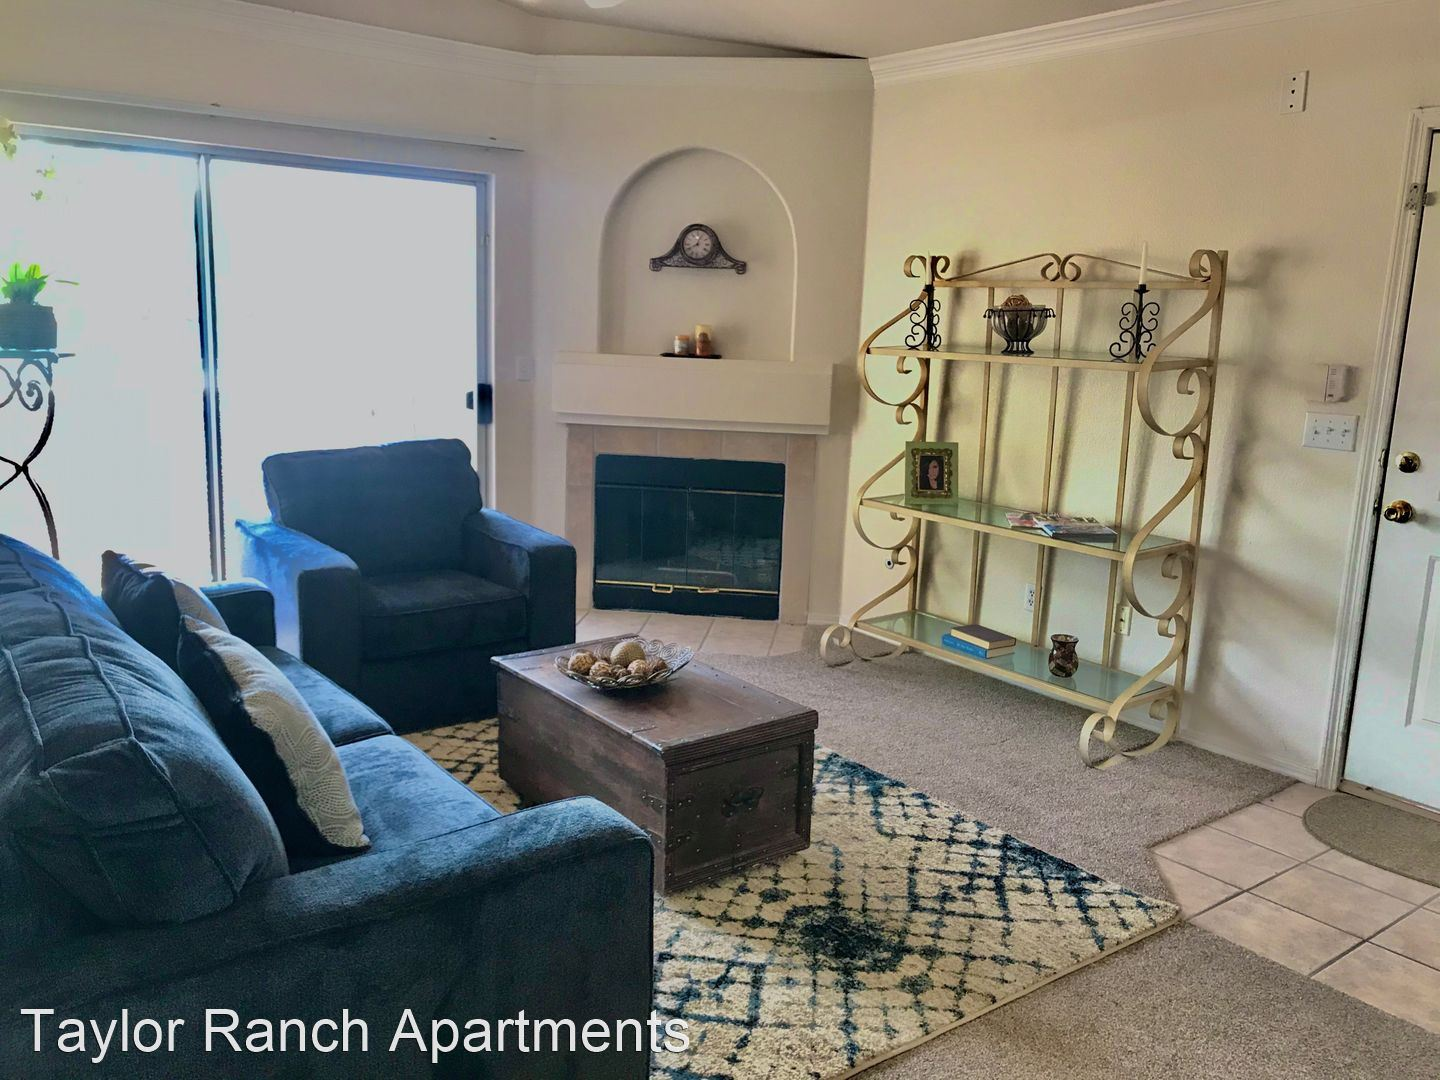 5601 Taylor Ranch Rd NW - 1119USD / month